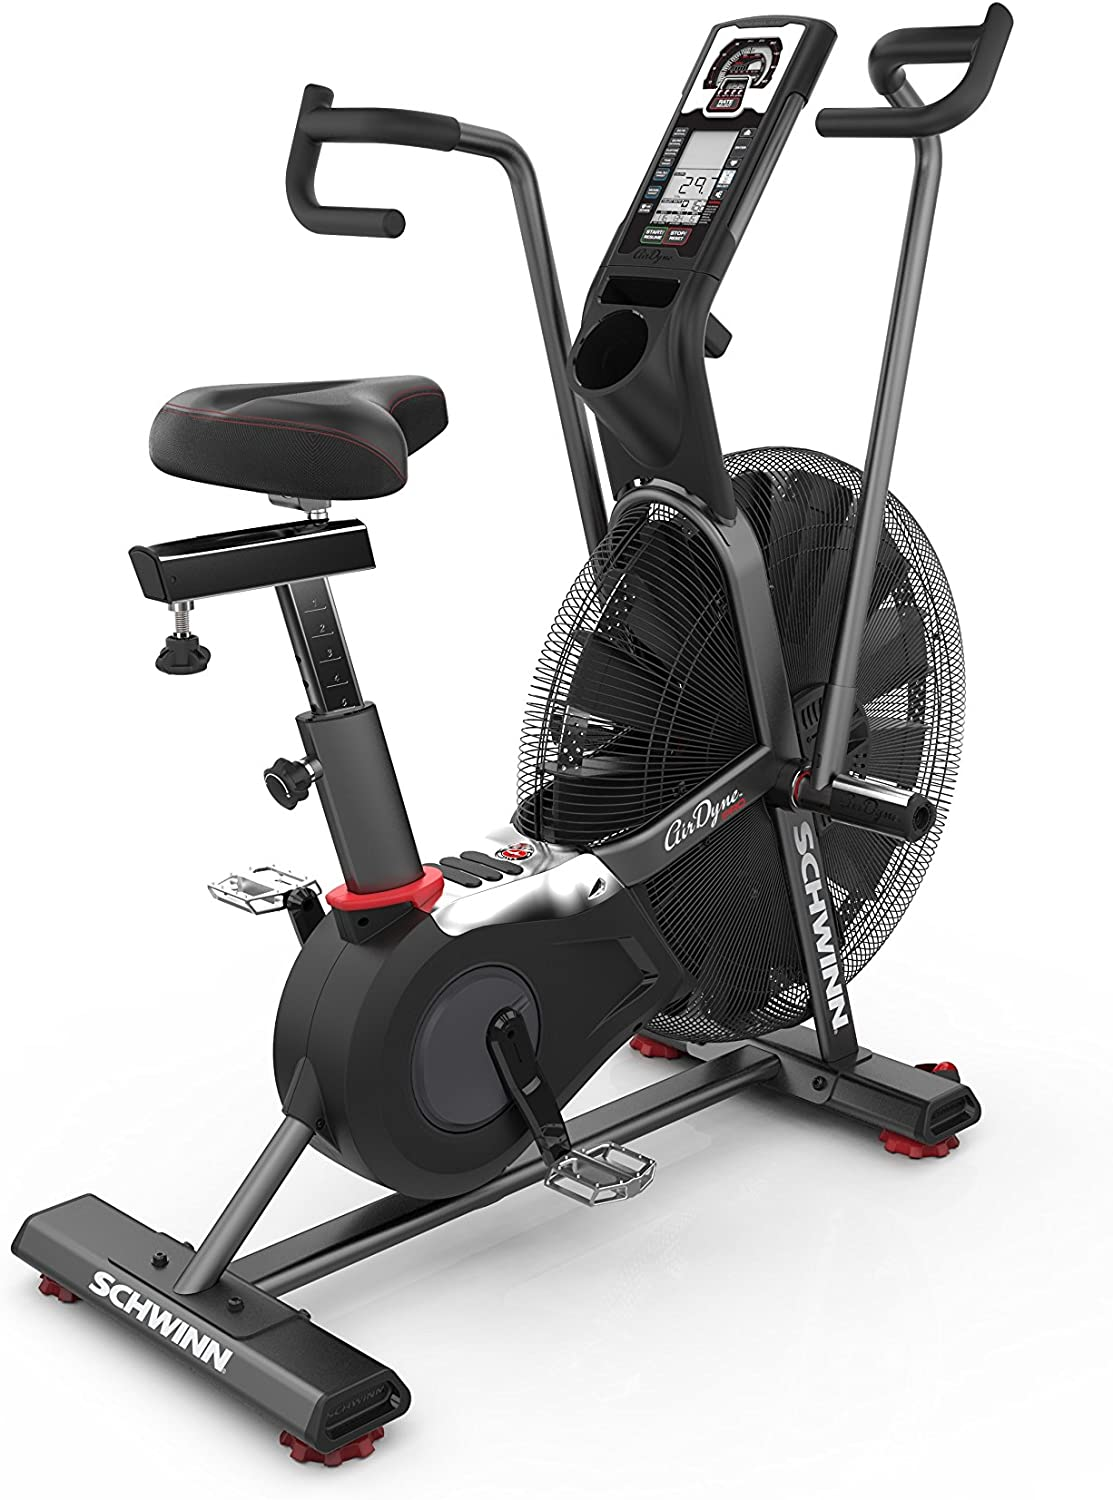 SCHWINN AIRDYNE PRO EXERCISE BIKE- Best Exercise Bikes With Upto 500lbs Weight Capacity